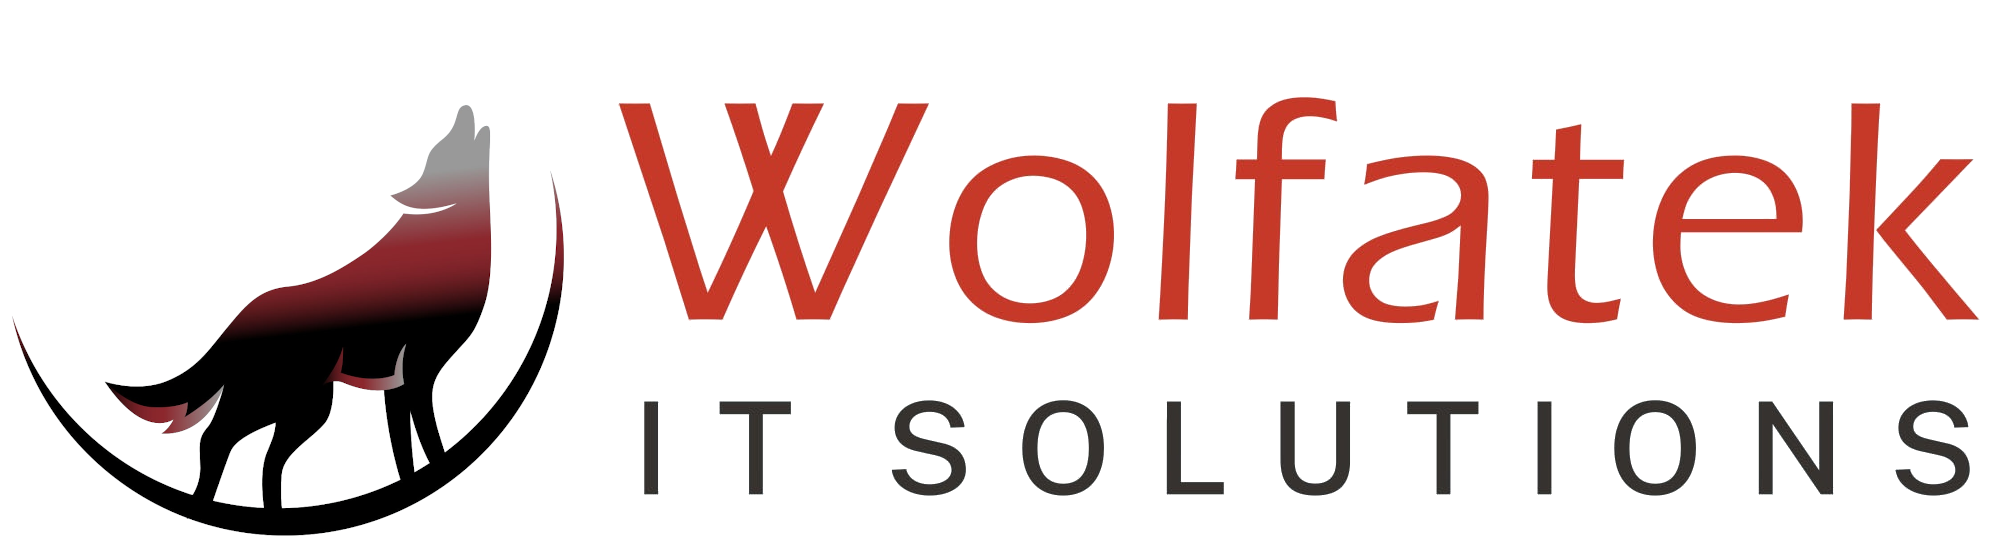 Wolfatek IT Solutions & Technology | Durban North |  Business IT Equipment & Support | Server Specialists, IT Dept |  Data Recovery | Laptop and PC Repairs